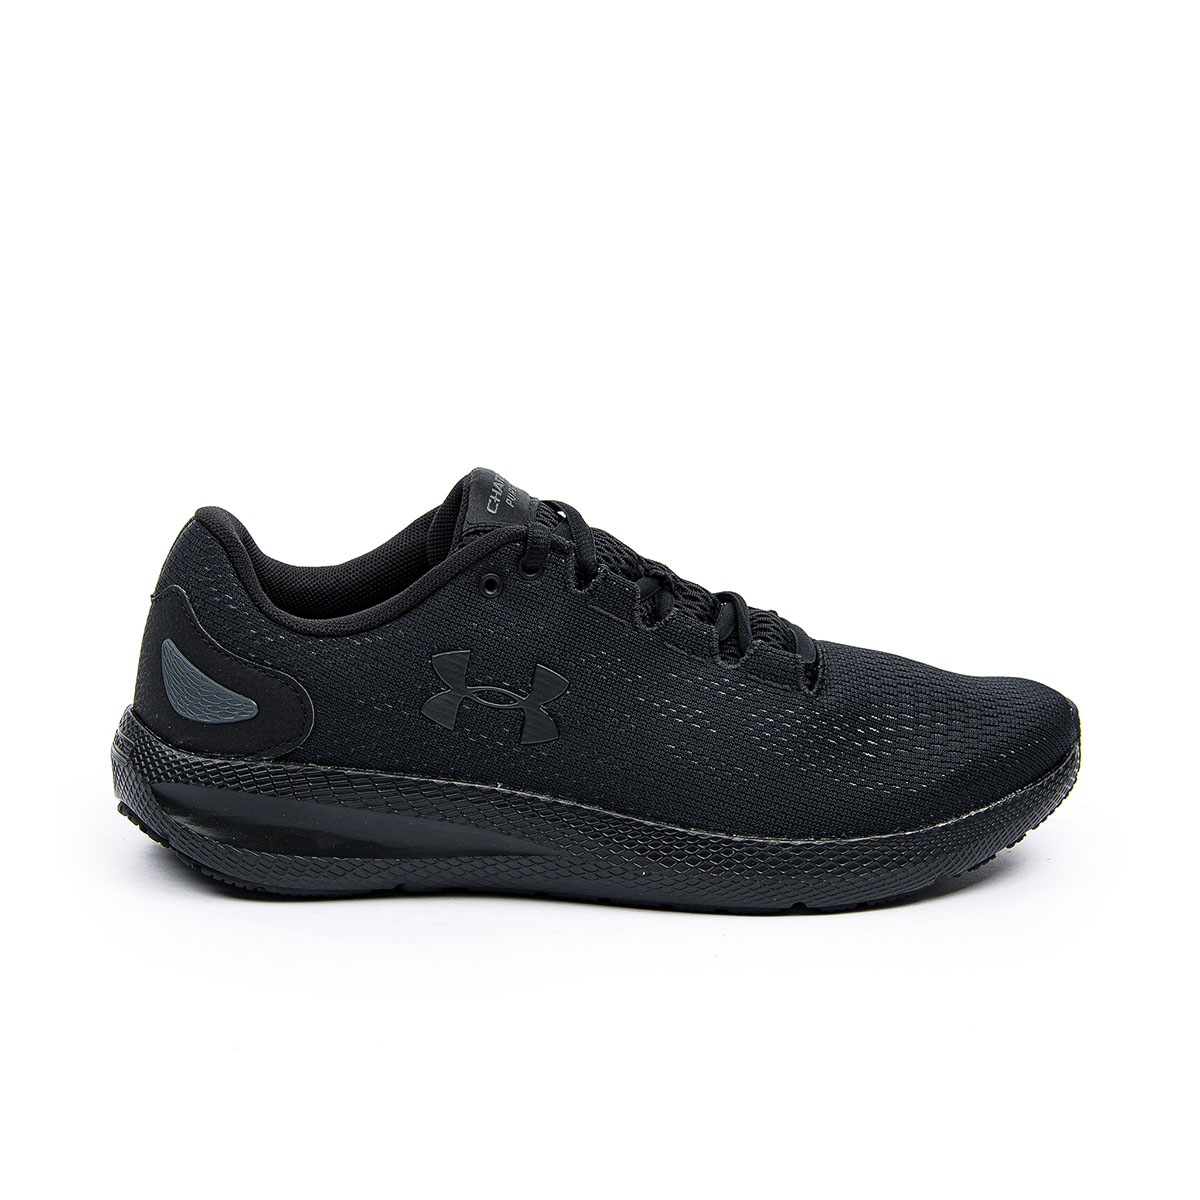 UNDER ARMOUR - CHARGED PURSUIT 2